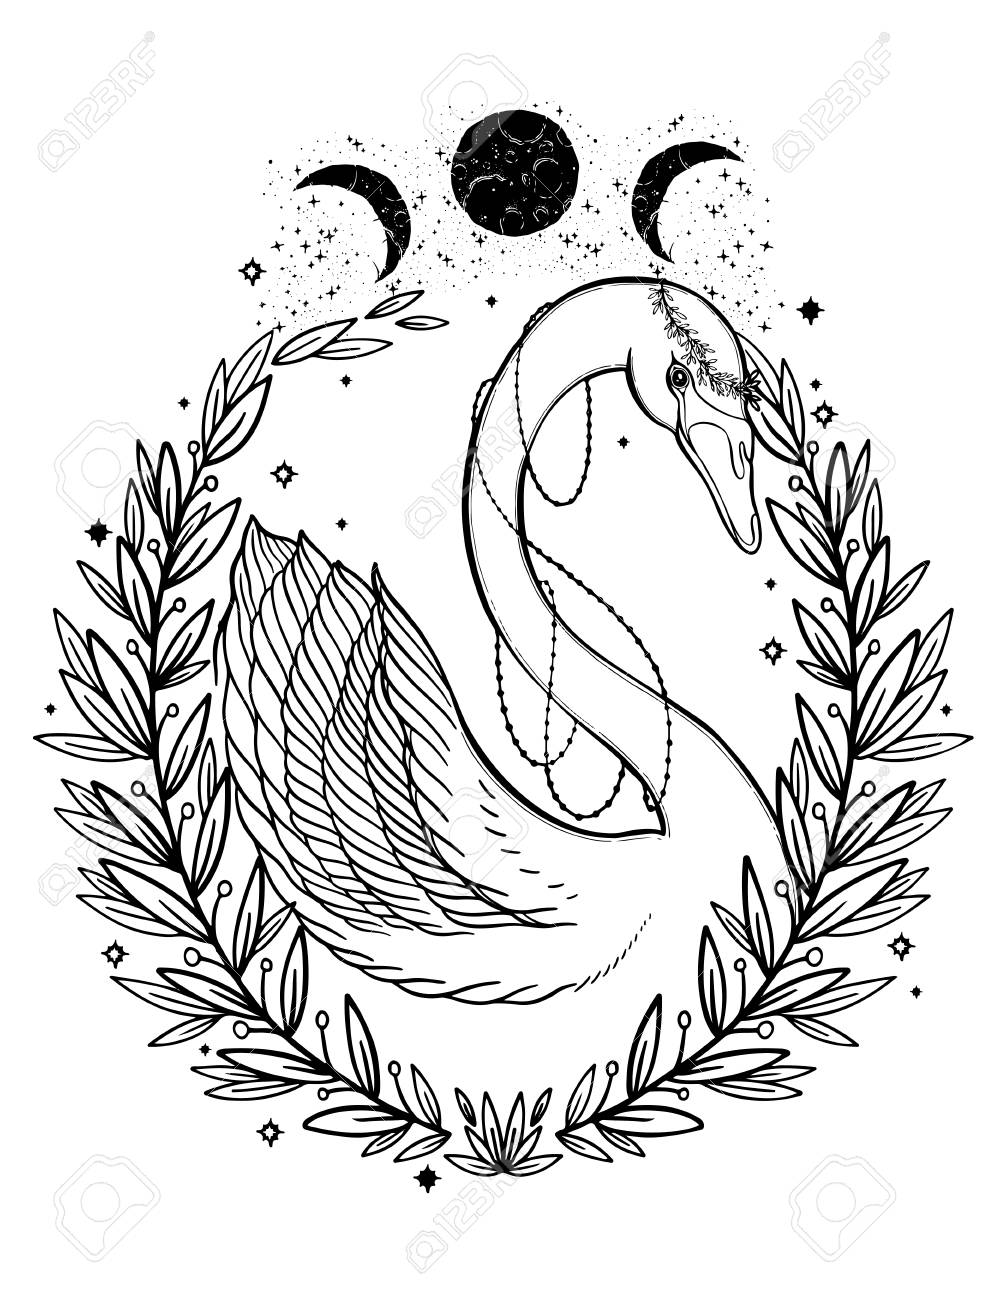 Sketch graphic illustration Beautiful Swan fairytale character with mystic and occult hand drawn symbols. Vector illustration. Vintage Hands with Old Fashion Tattoos.Freemasonry and secret societies emblems - 114858507